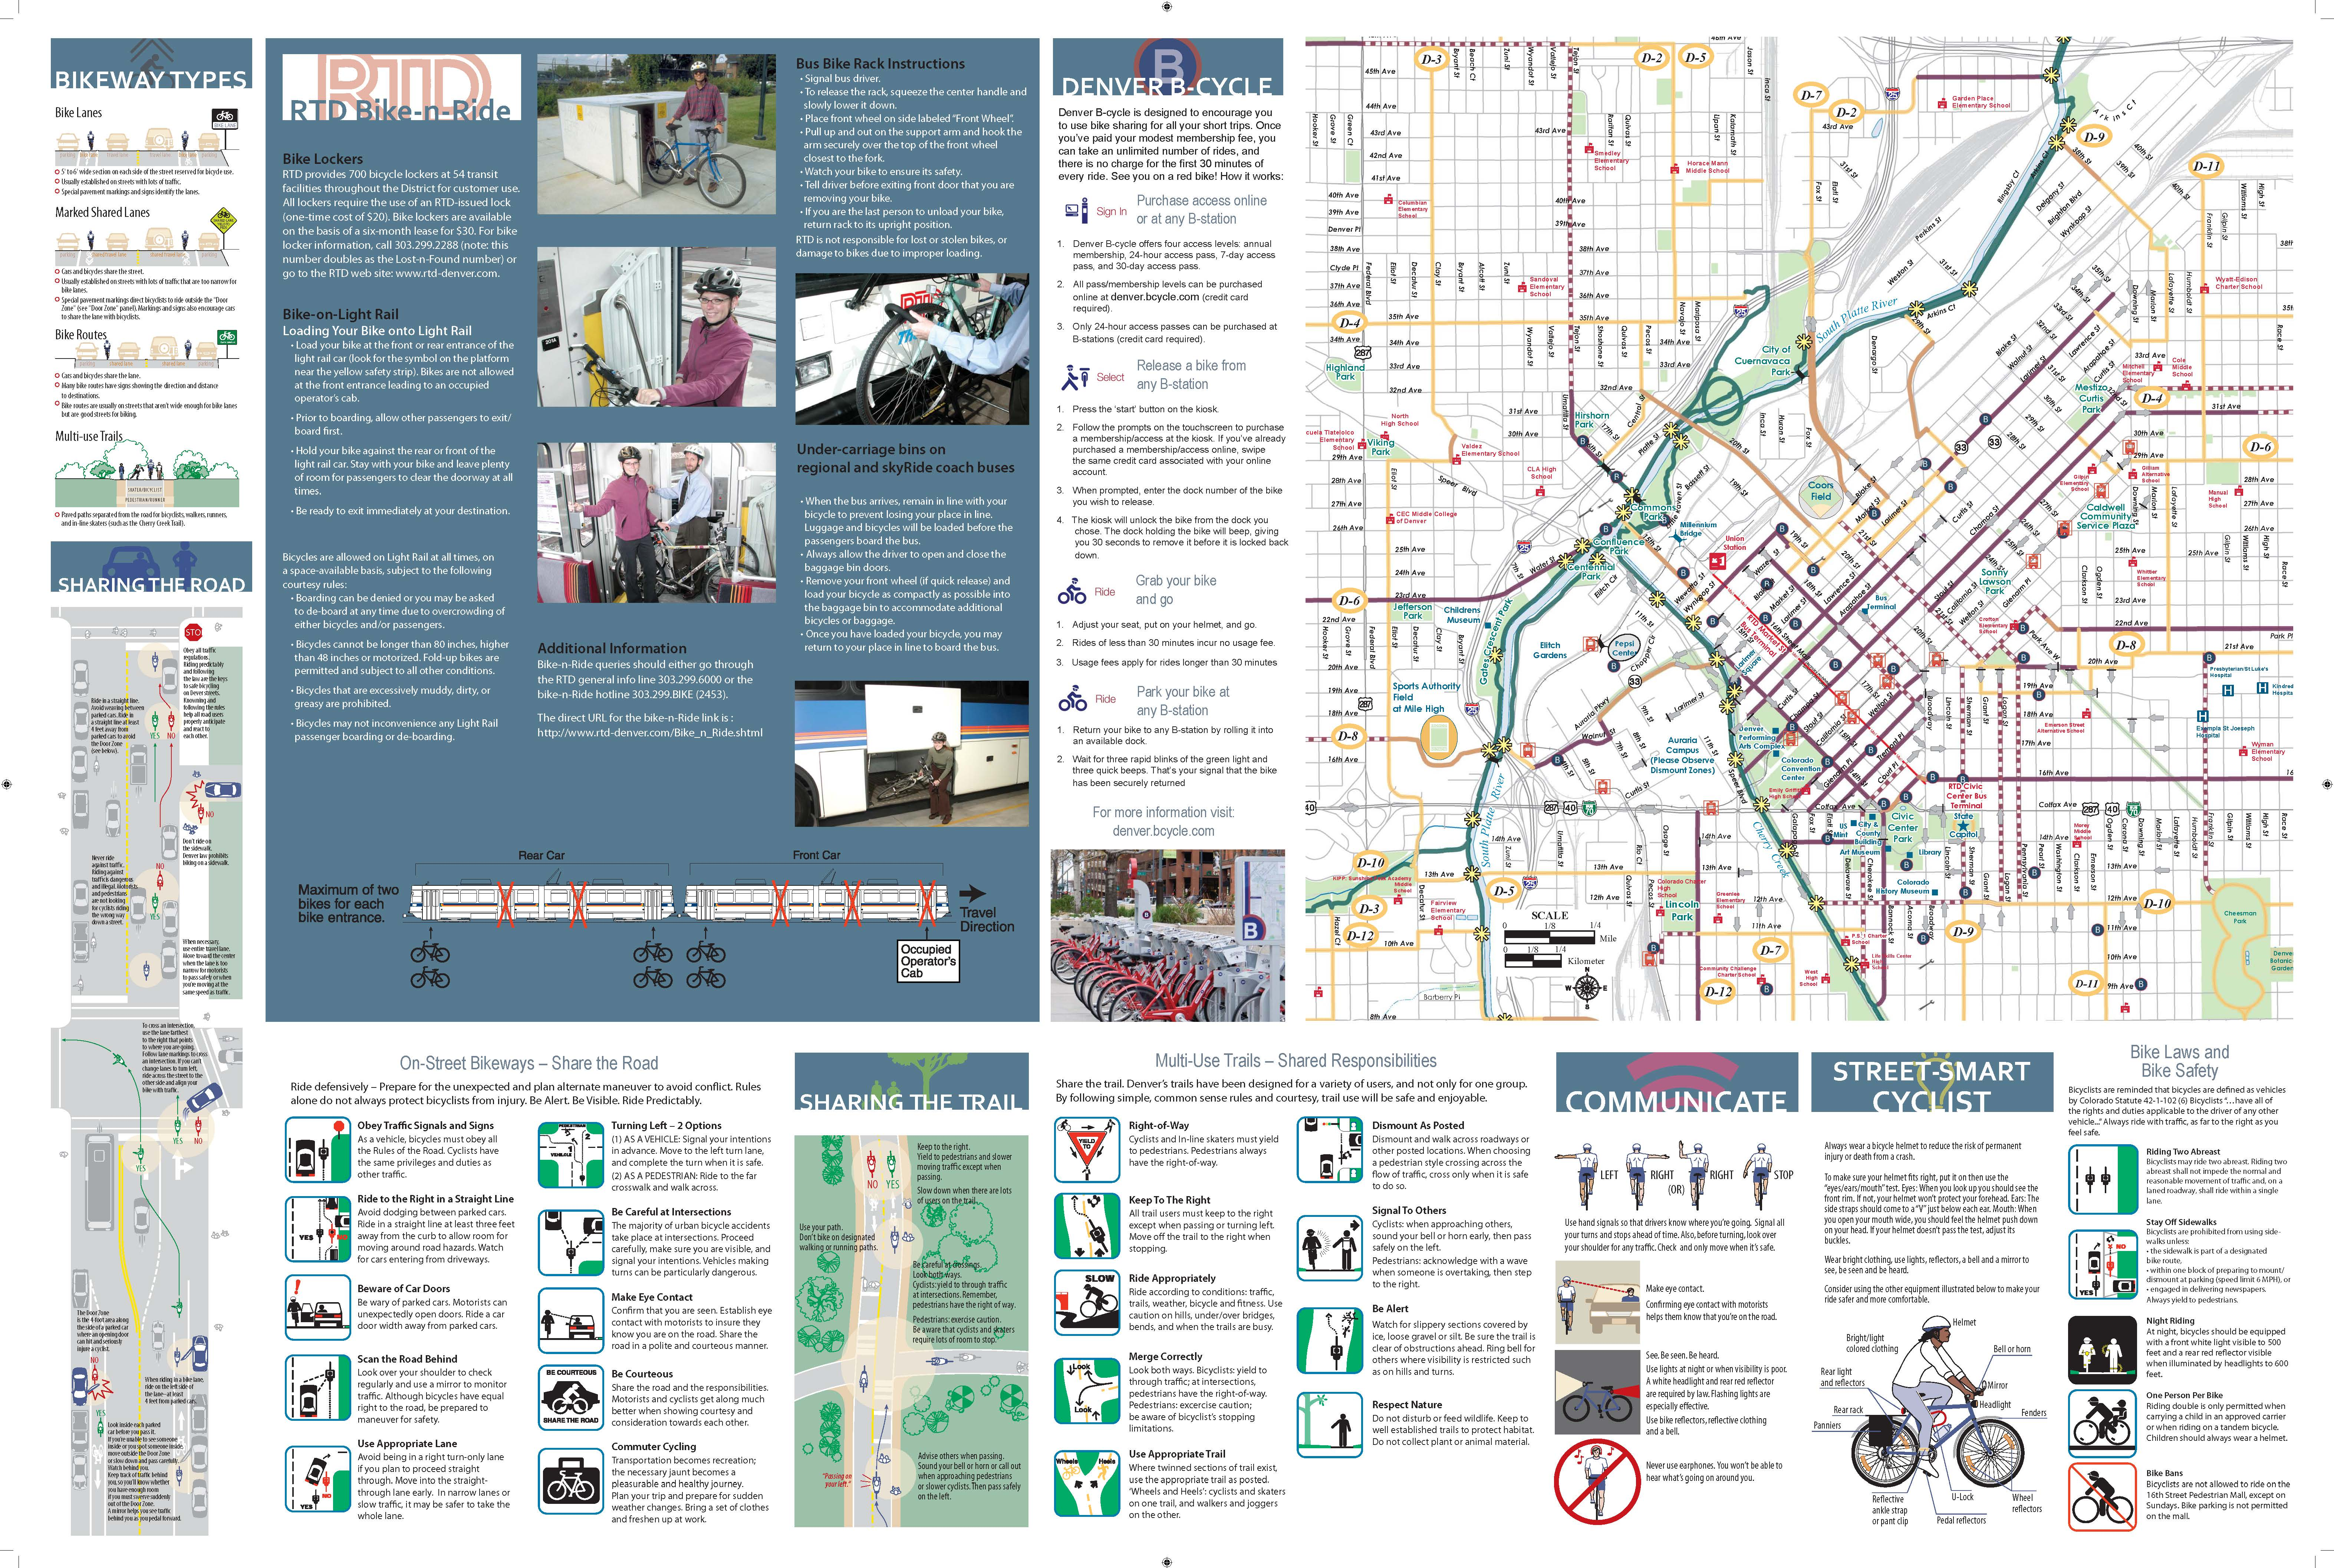 Denver Metro and Regional Bike Routes and safety information.